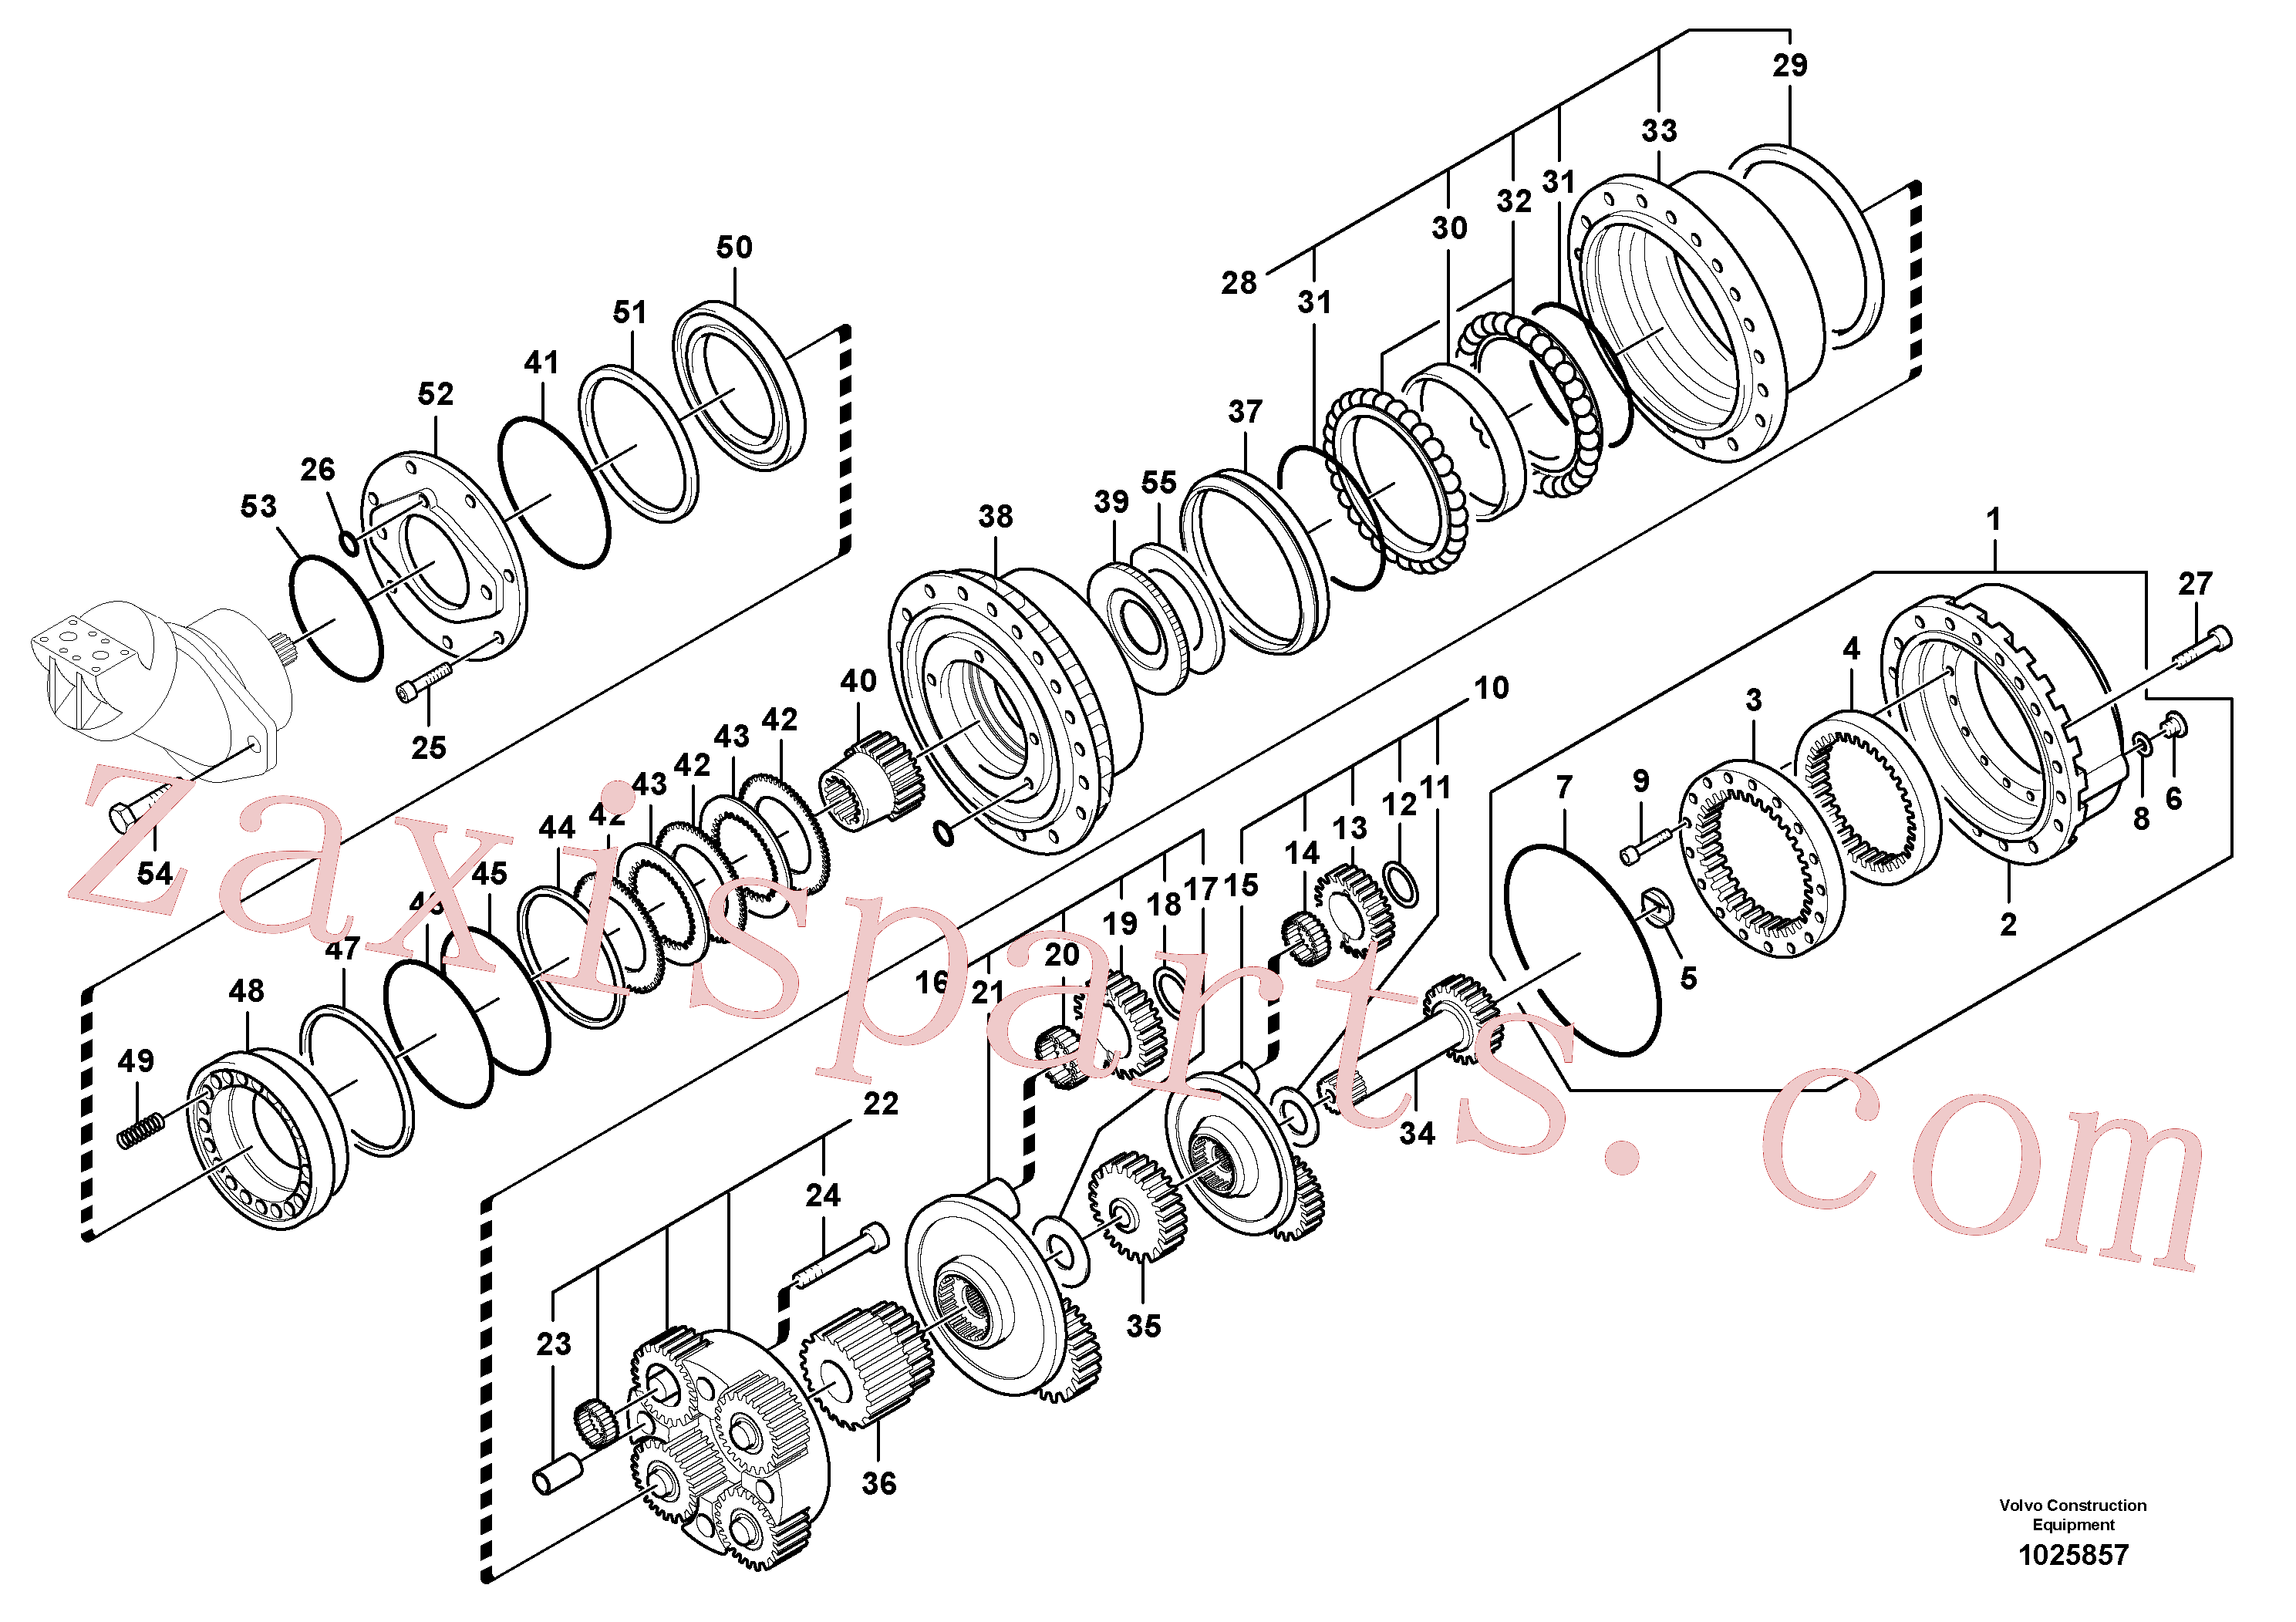 VOE11706895 for Volvo Travel gearbox(1025857 assembly)